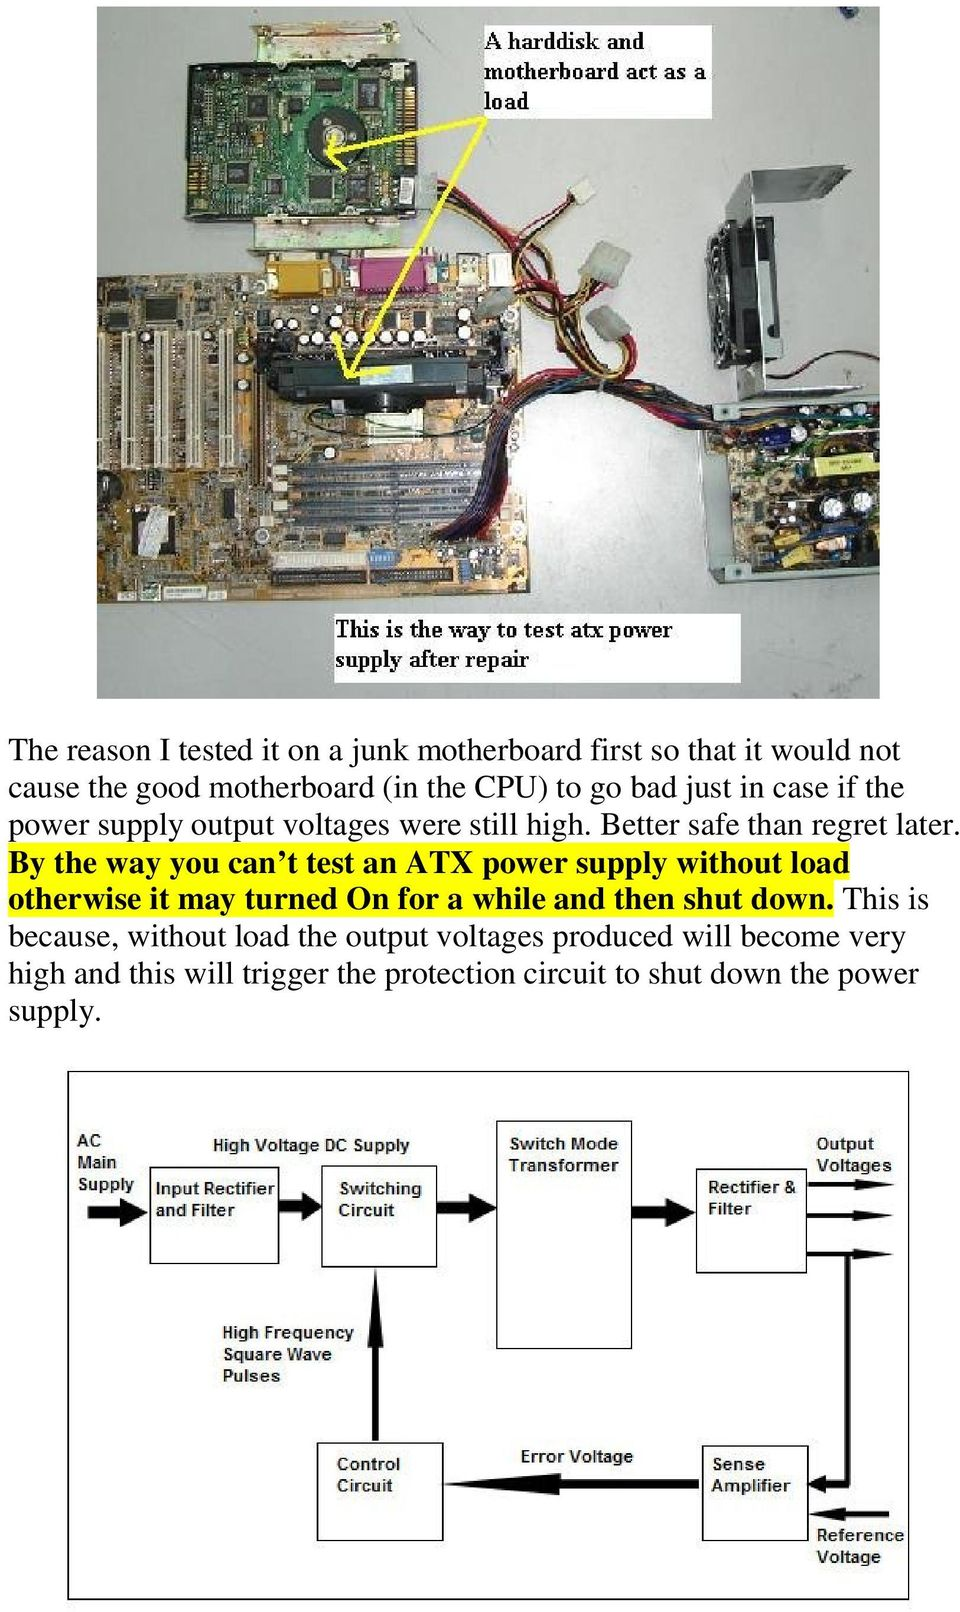 Troubleshooting And Repairing Atx Power Supply Pdf Circuit Diagram Of The Train A Typical Computer By Way You Can T Test An Without Load Otherwise It May